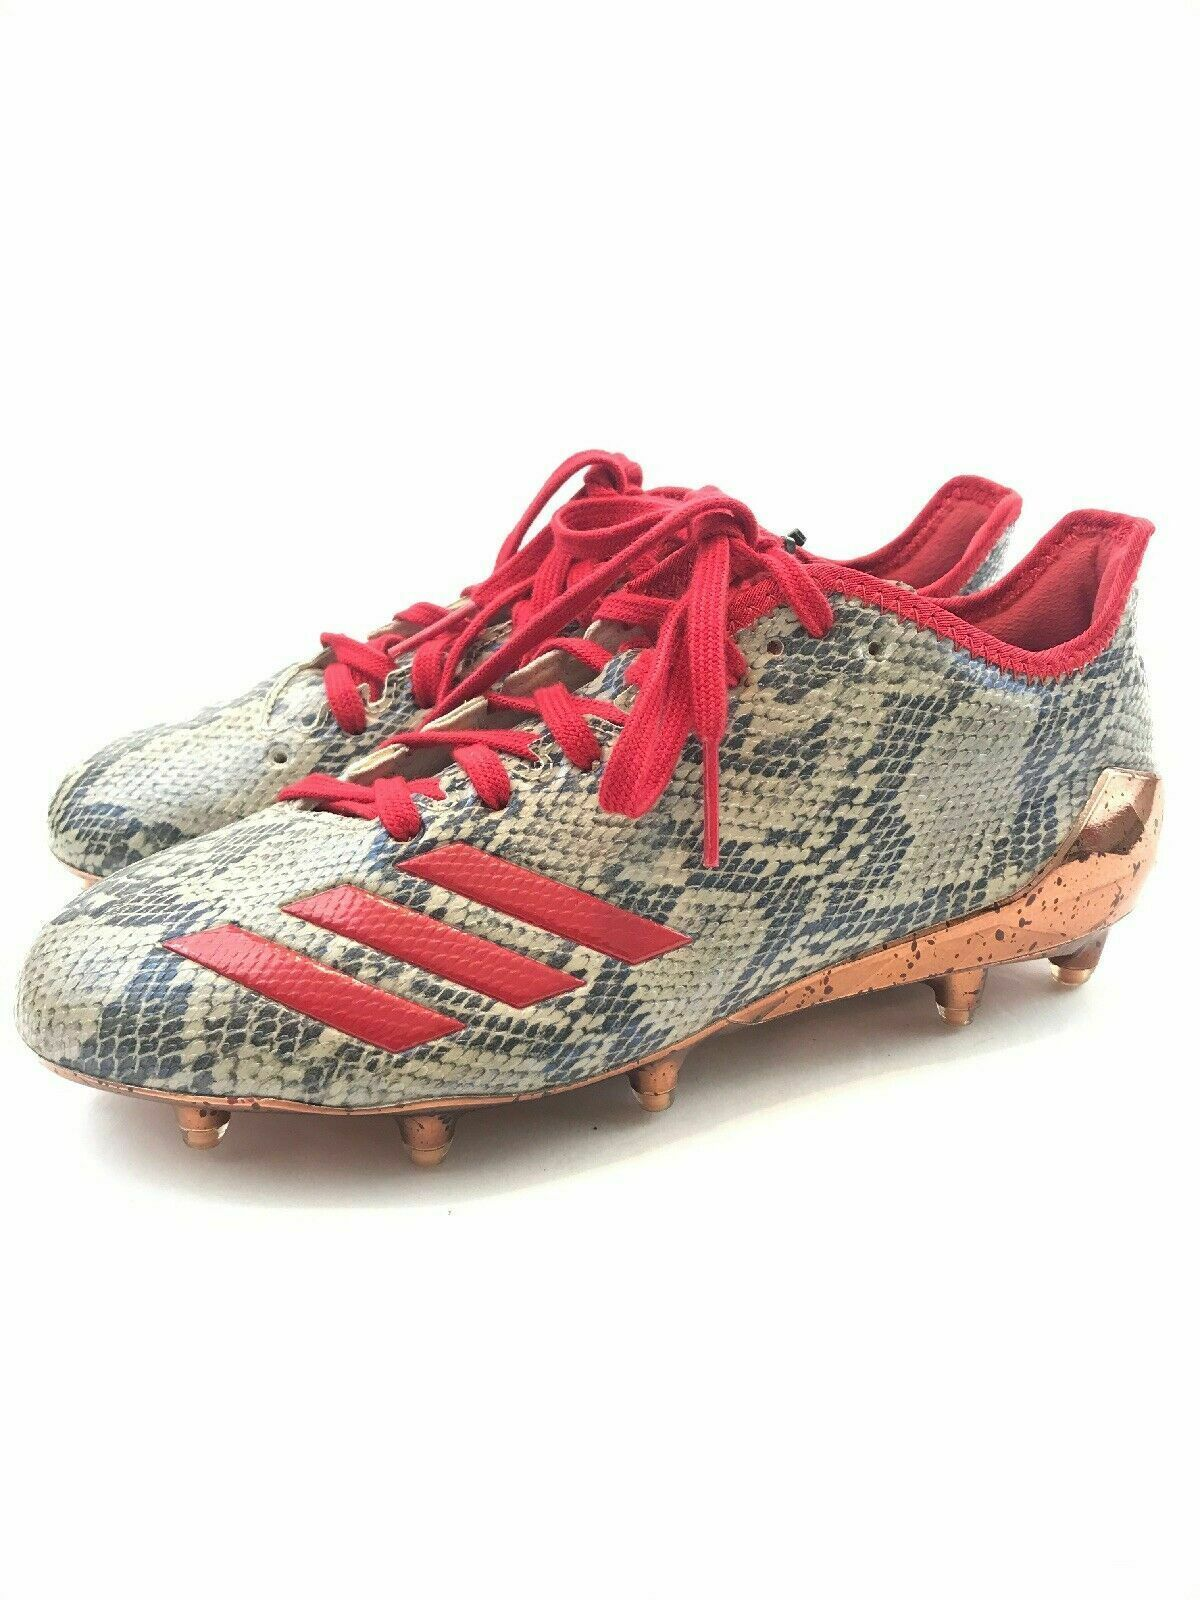 check out 85163 61466 Adidas Adizero 5 Star 6.0 Football Cleats and 50 similar items. 57